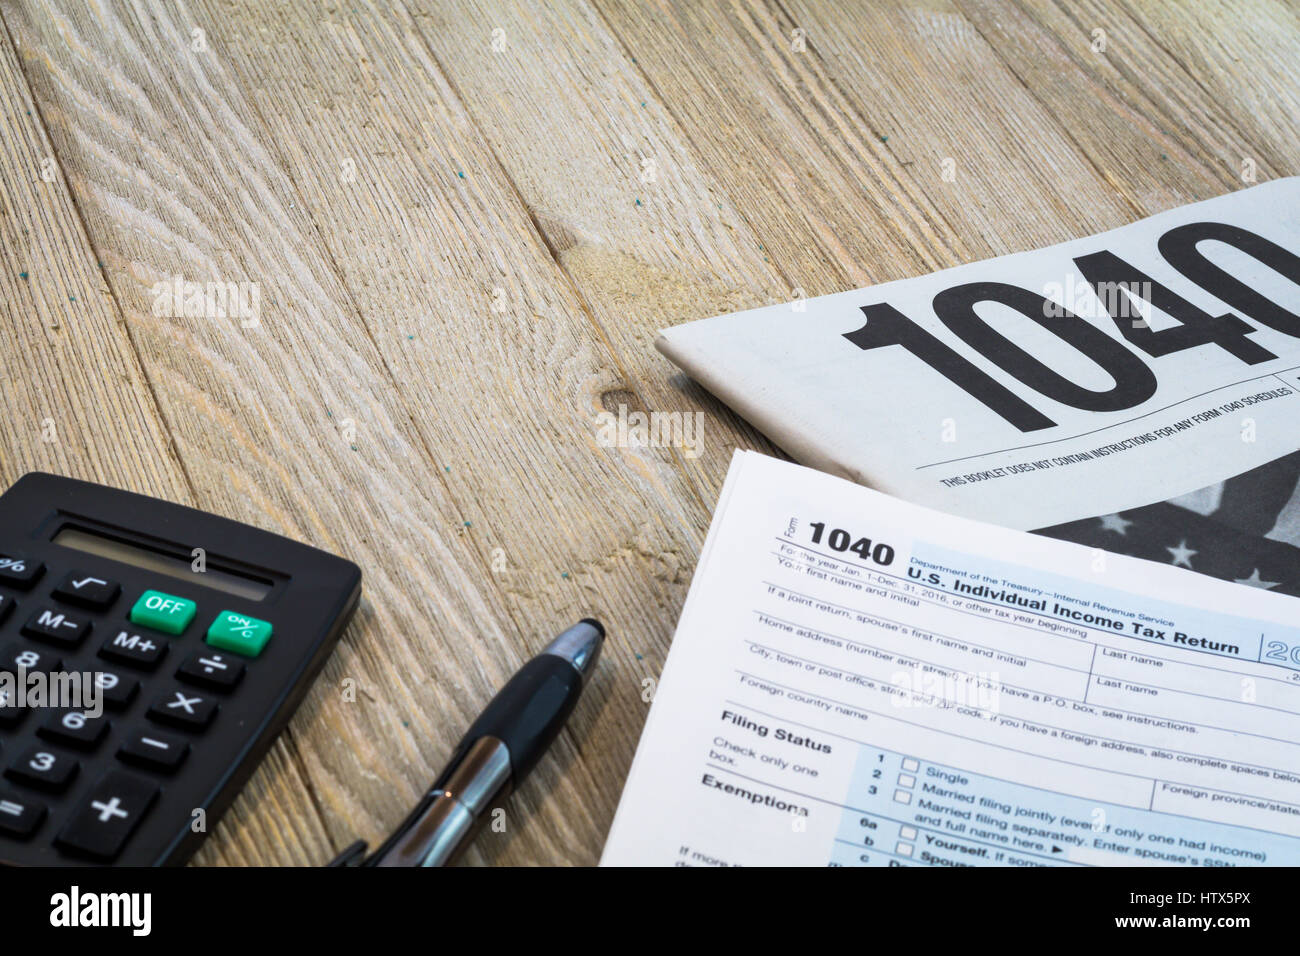 Tax preparation forms and tax booklet US 1040 Tax form - Stock Image